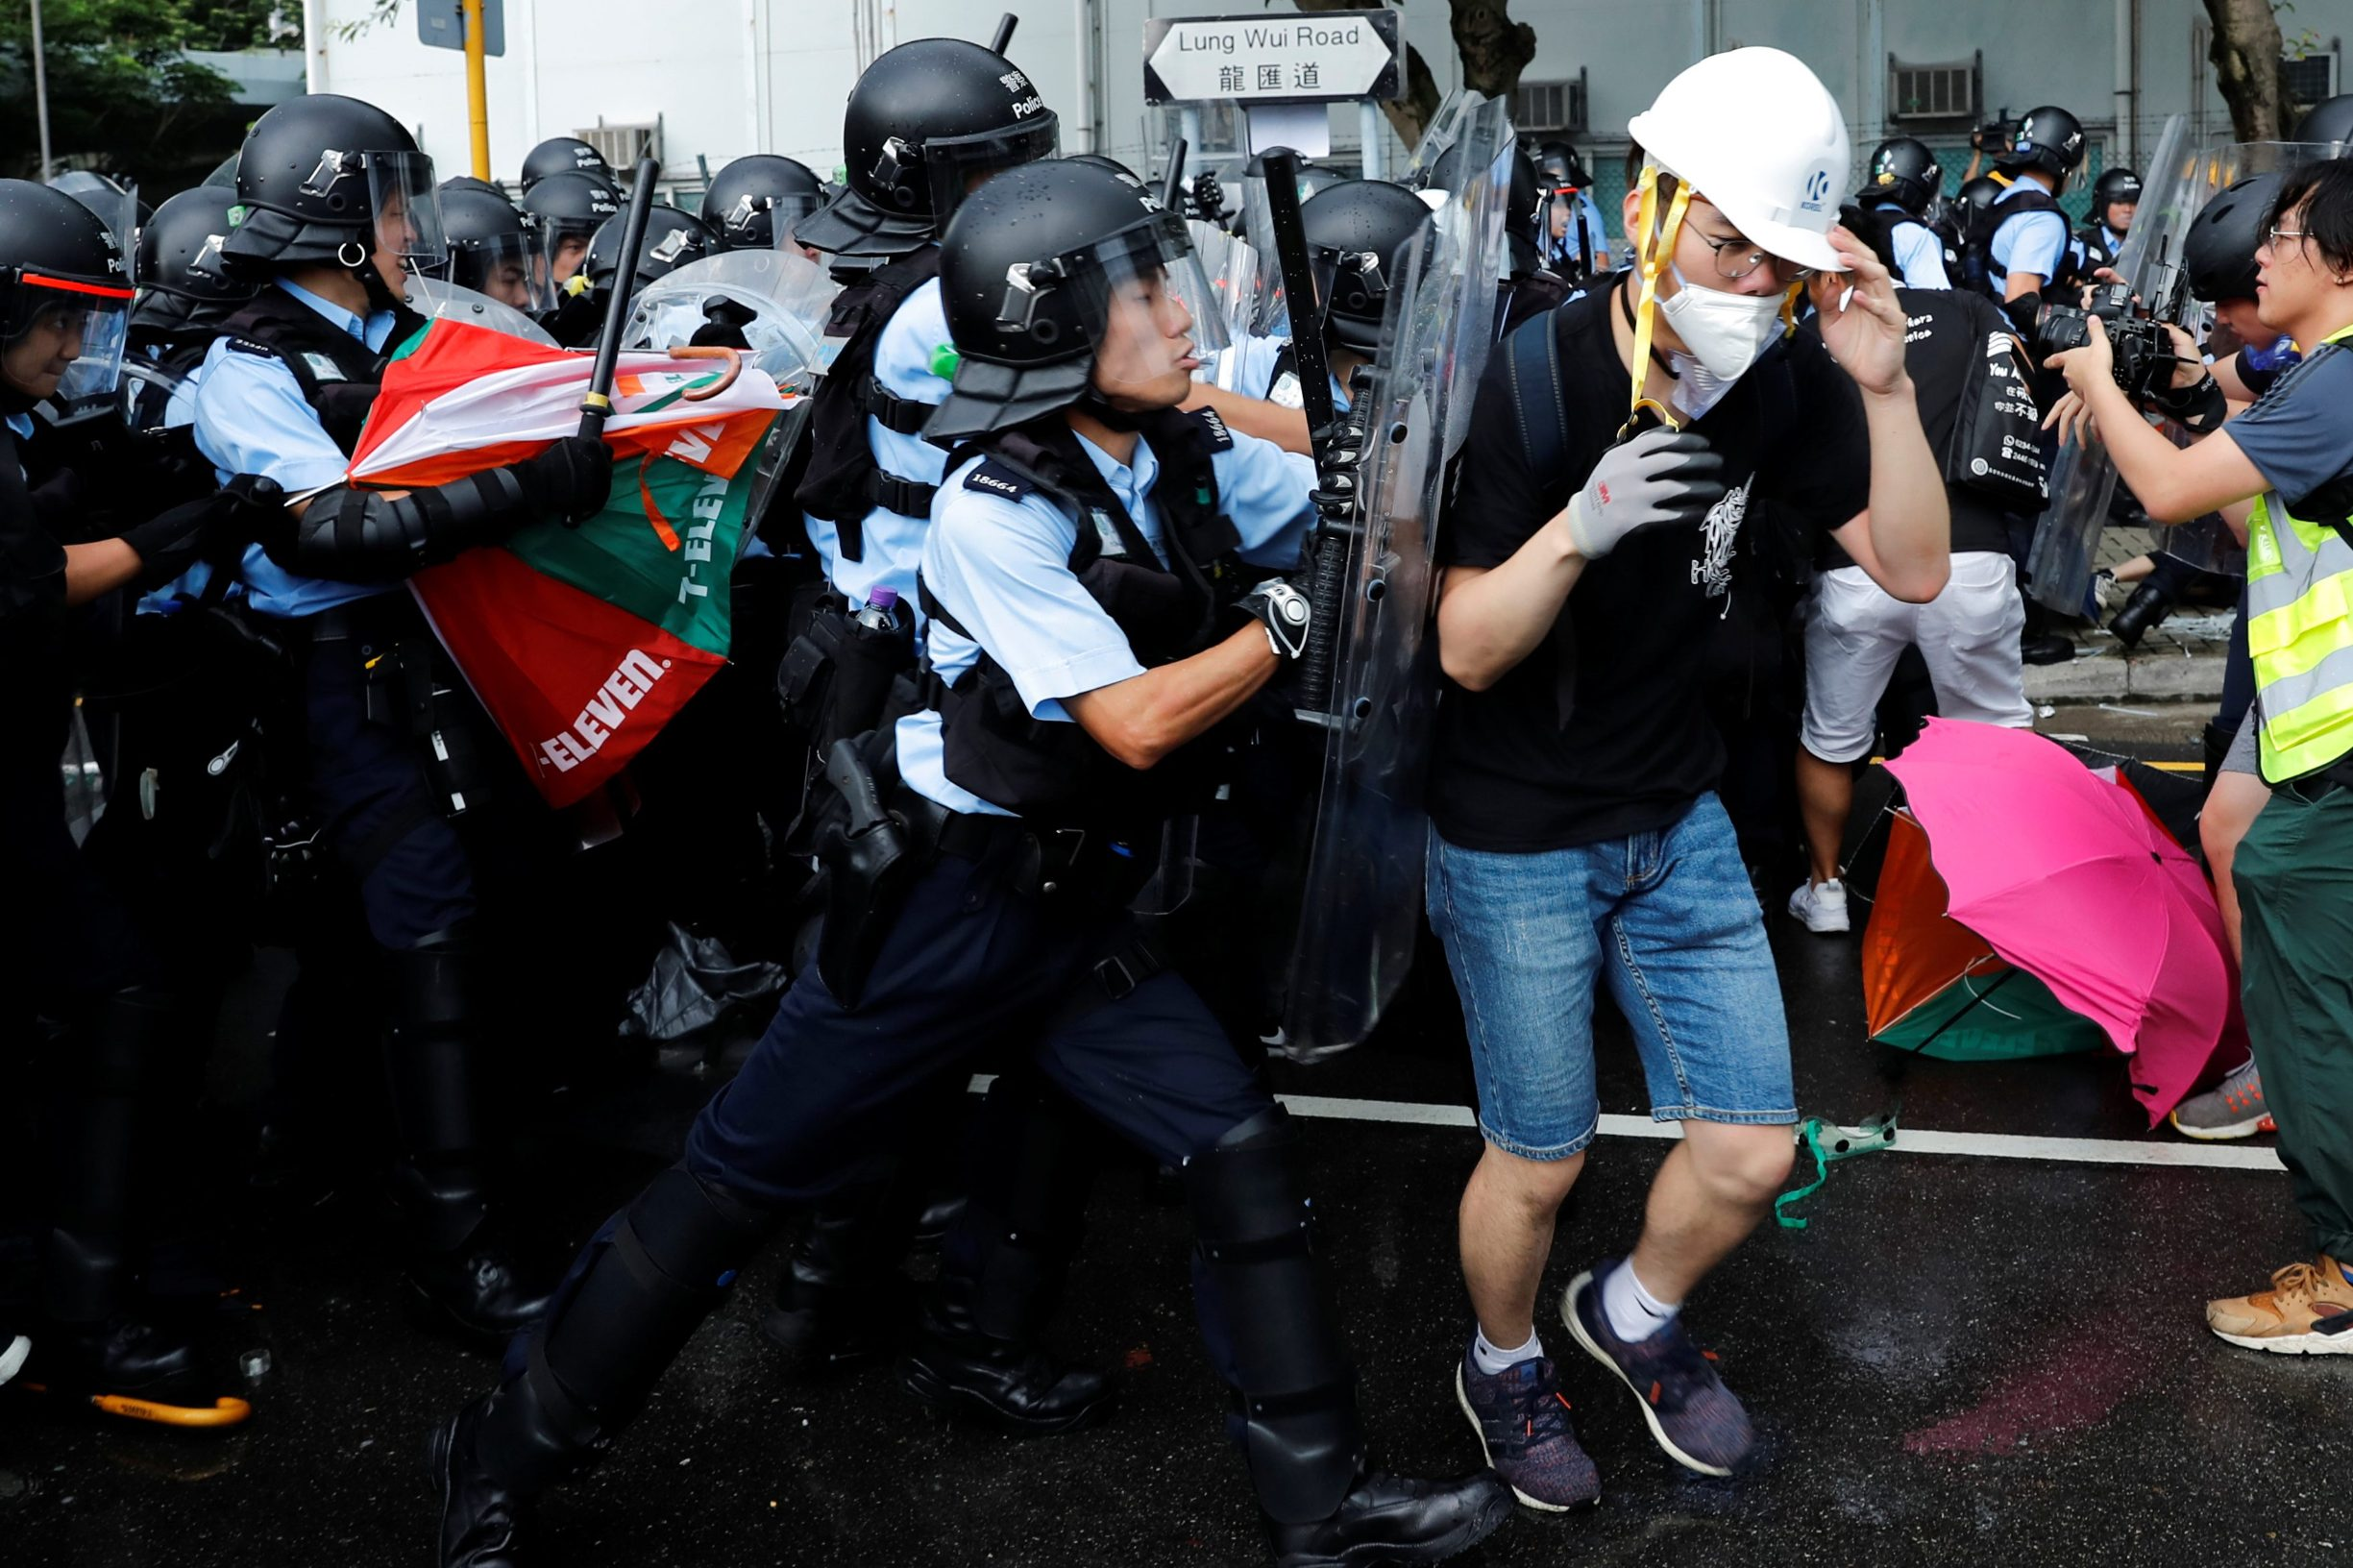 Police try to disperse protesters near a flag raising ceremony for the anniversary of Hong Kong handover to China in Hong Kong, China July 1, 2019. REUTERS/Tyrone Siu